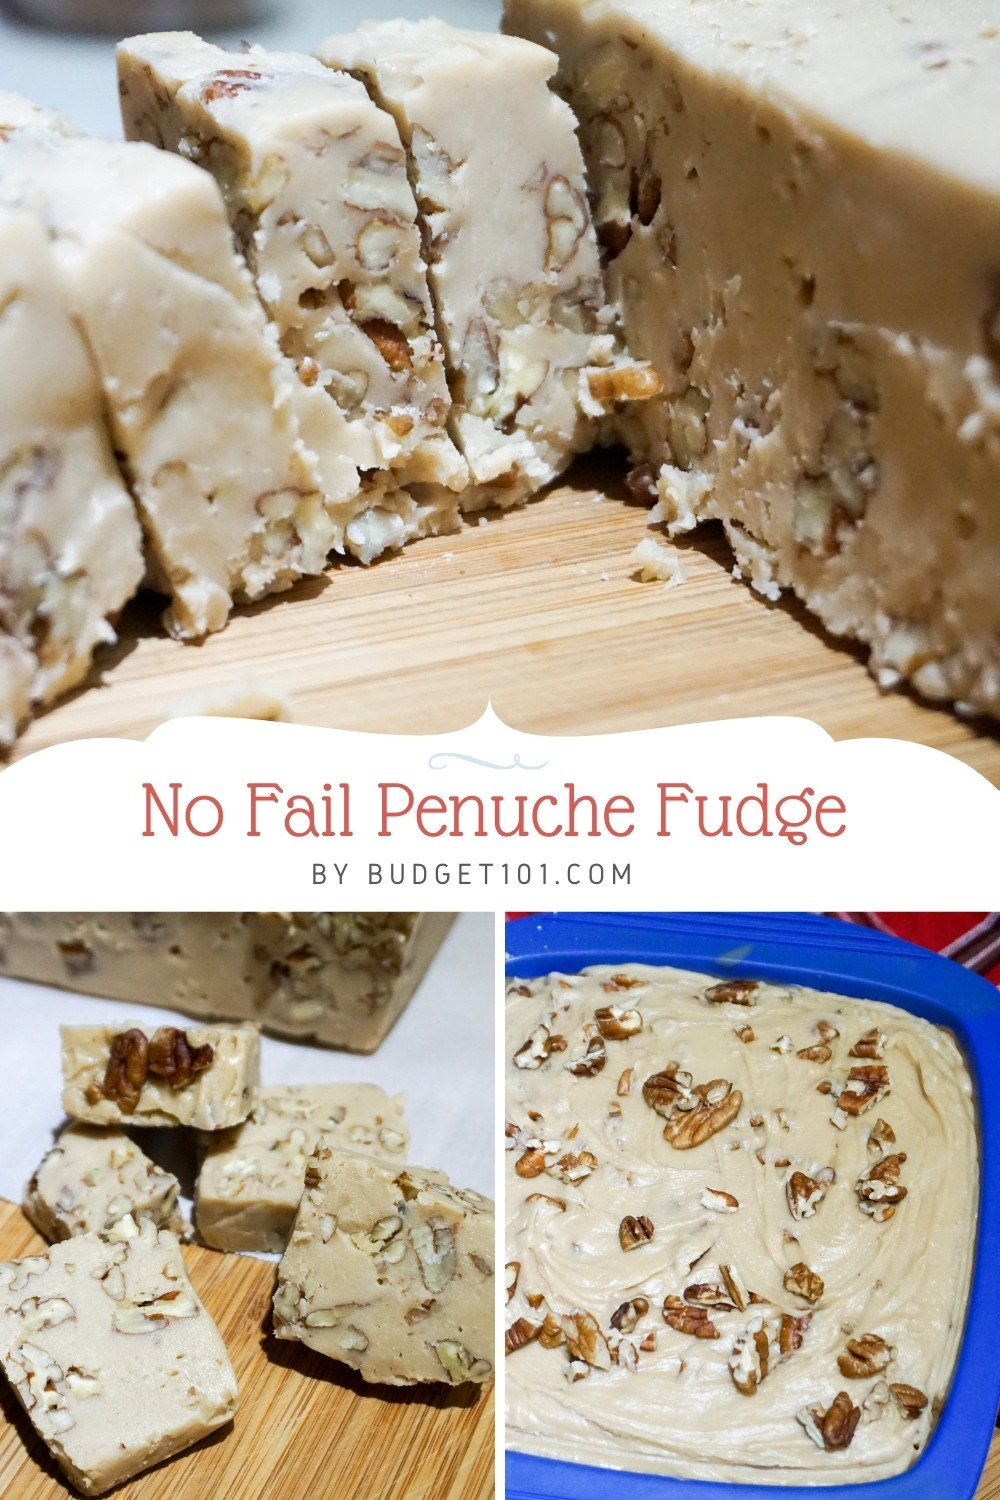 Amazing, EASY No-Fail Penuche Fudge! Smooth, creamy, decadent. This penuche fudge is so forgiving and perfect for even novice candy makers. All the flavor and texture of traditional penuche, without the frustration of needing perfect timing. #Penuche #NewEnglandRecipes #Fudge #EasyFudge #NoFailFudge #NoFailPenuche #Budget101